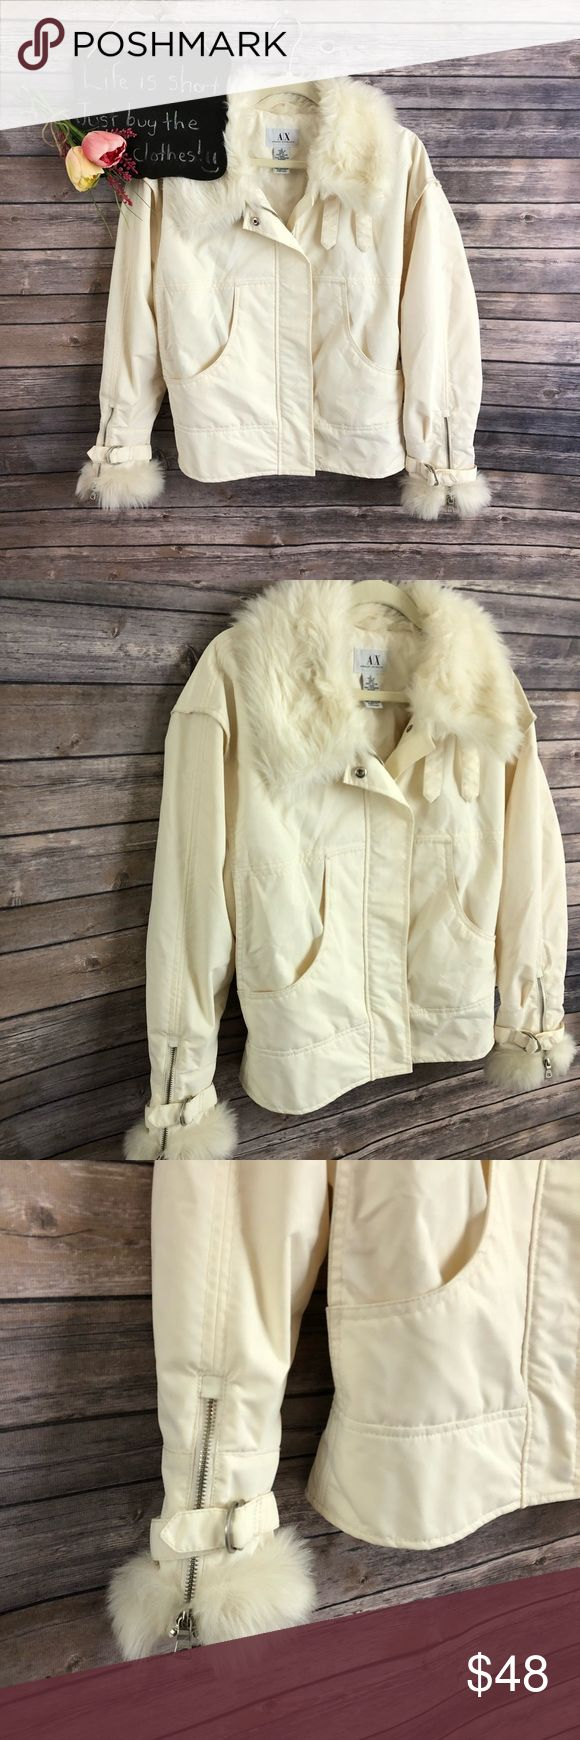 """Armani Exchange offwhite faux fur zip up jacket Armani Exchange offwhite faux fur zip up jacket. Has one spot that is under the collar so will never be seen. Beautiful jacket!! Size S.  20"""" arm pit to arm pit.  22.5"""" length. Armani Exchange Jackets & Coats"""